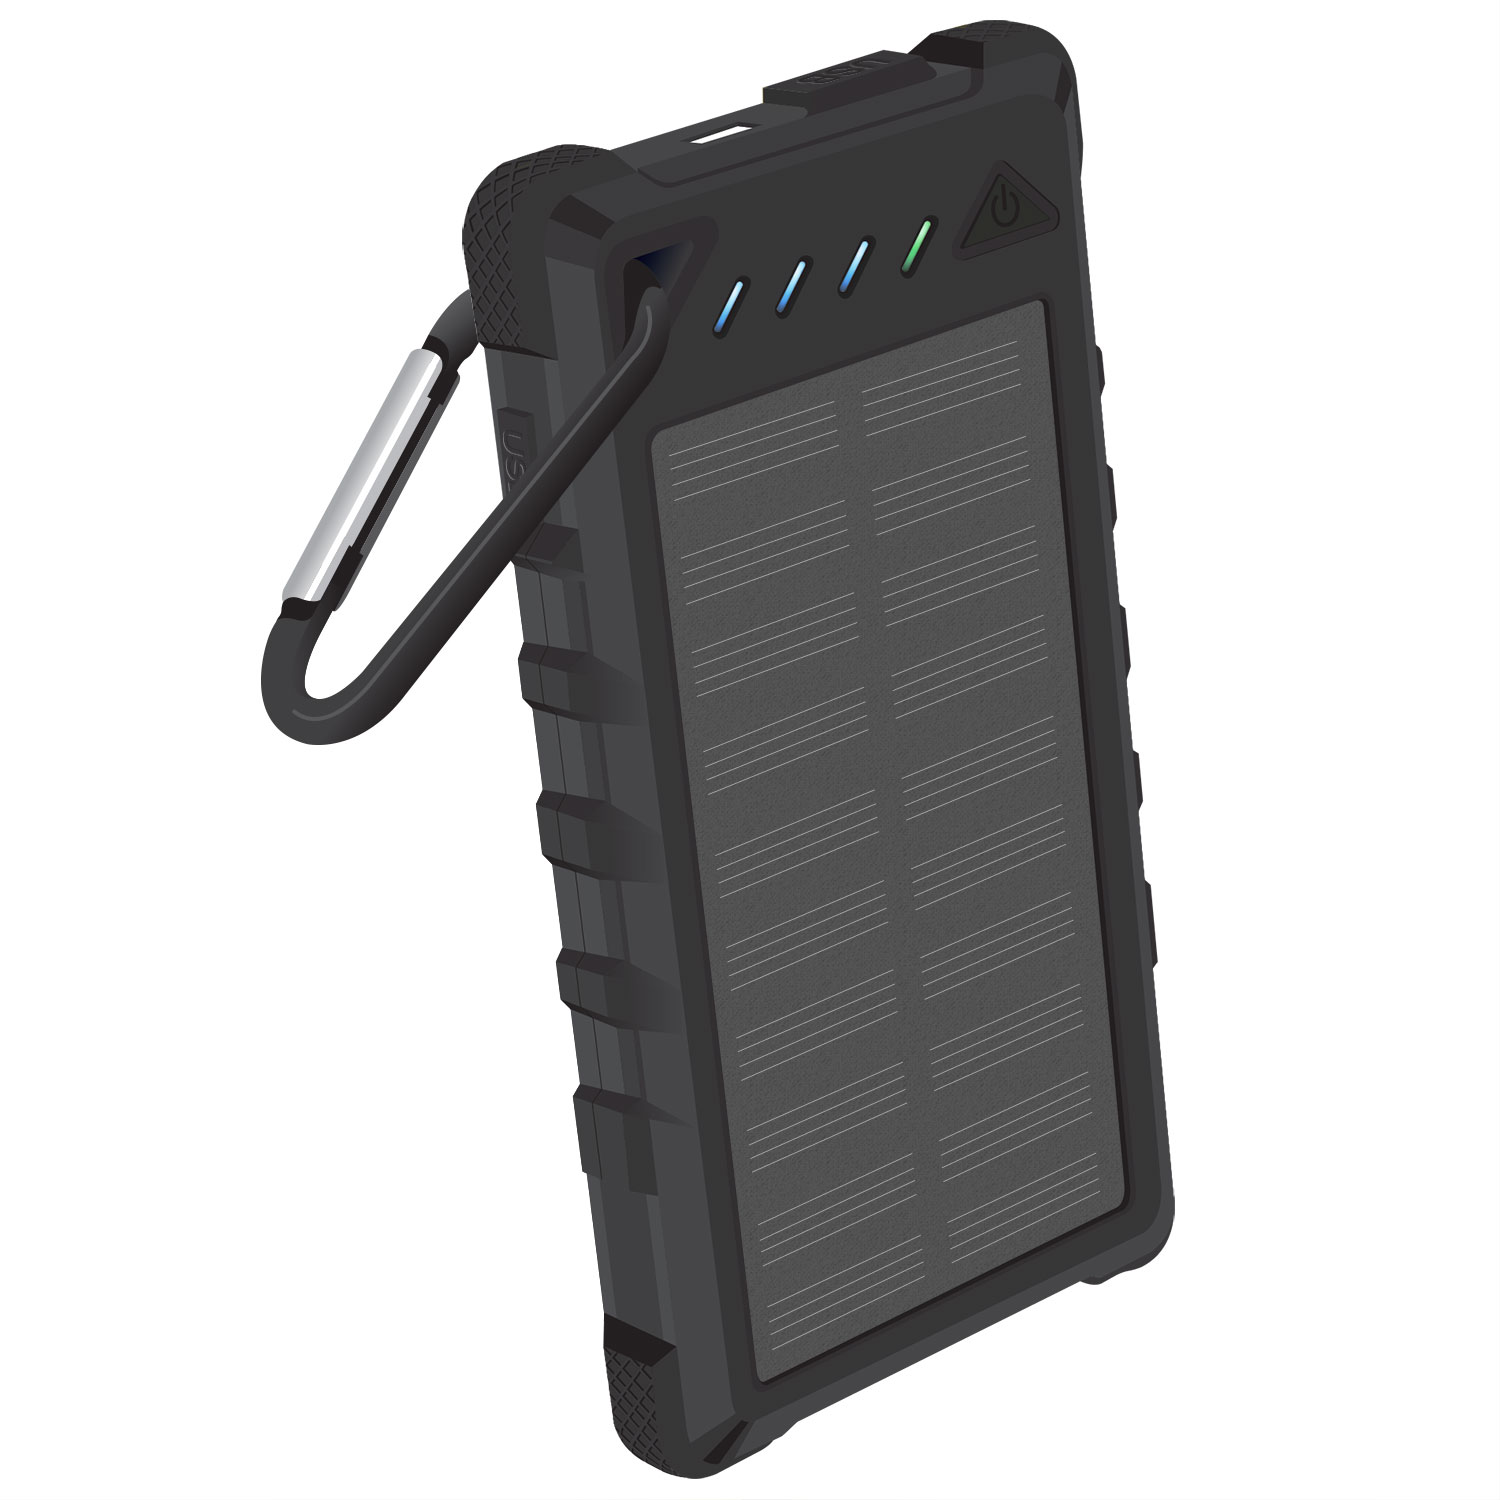 Sony Xperia Z Solar Powered Portable PowerBank Black